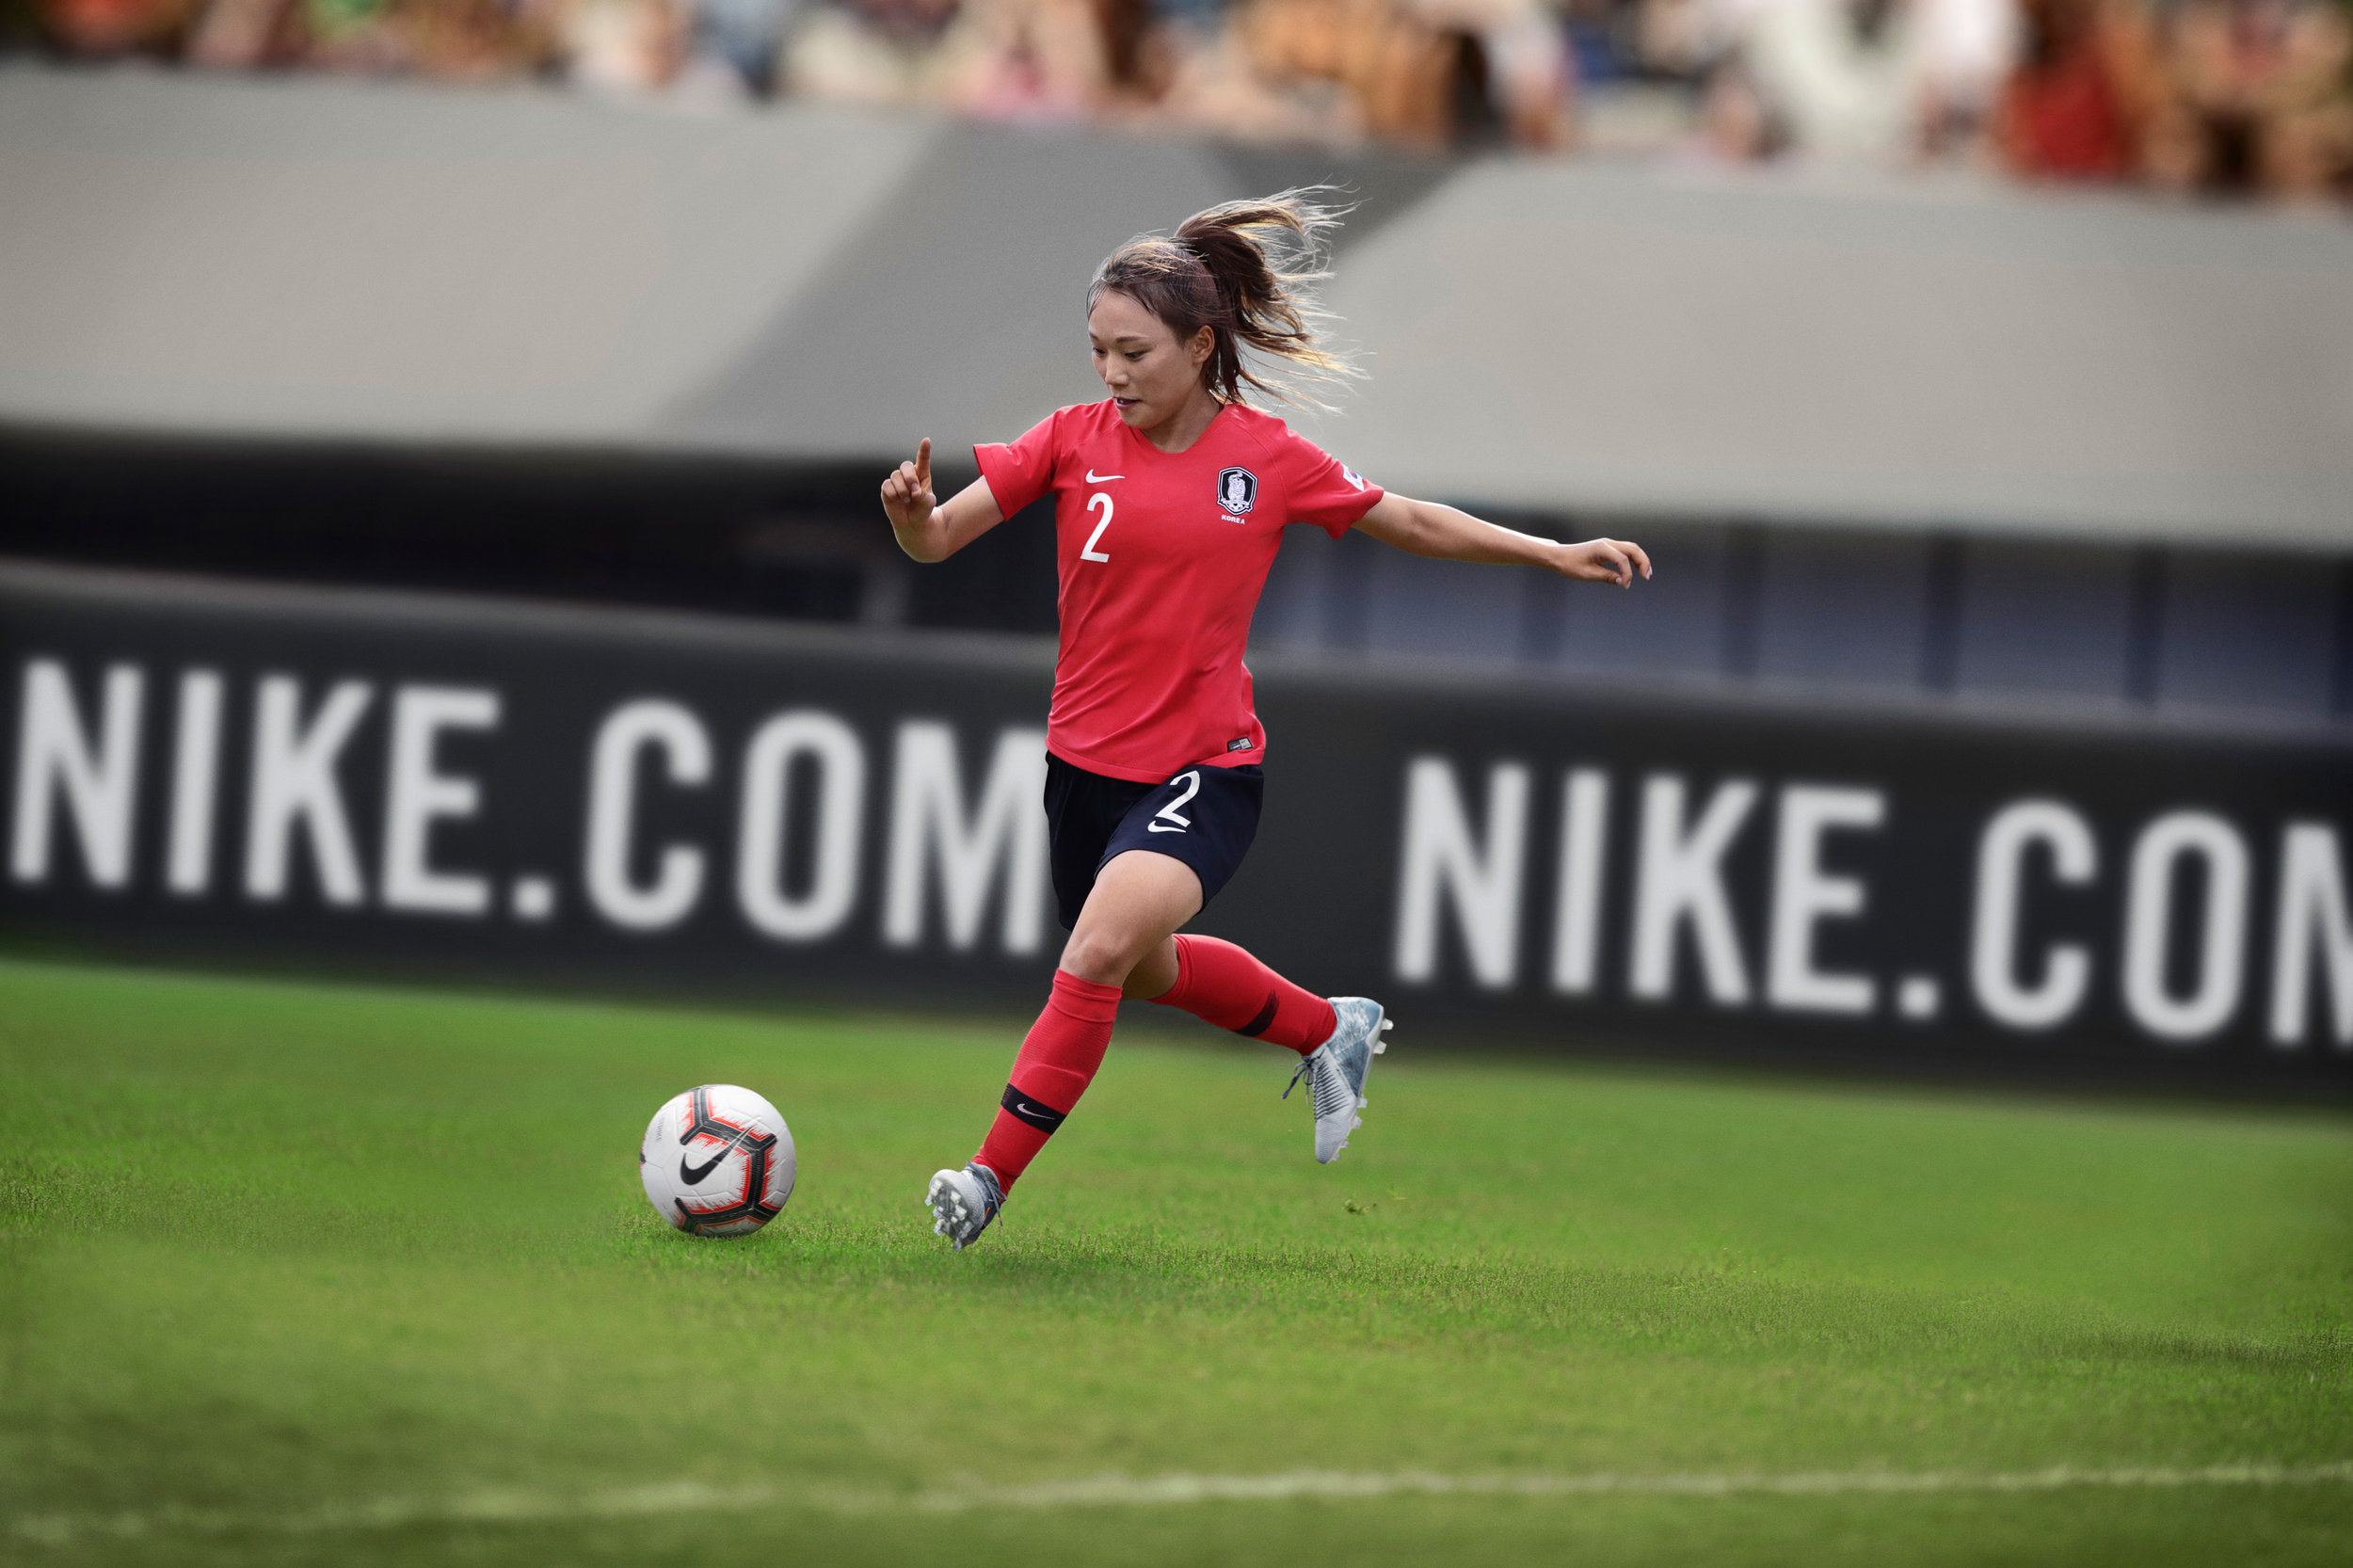 Nike_National_Team_Kit_Südkorea_9.jpg